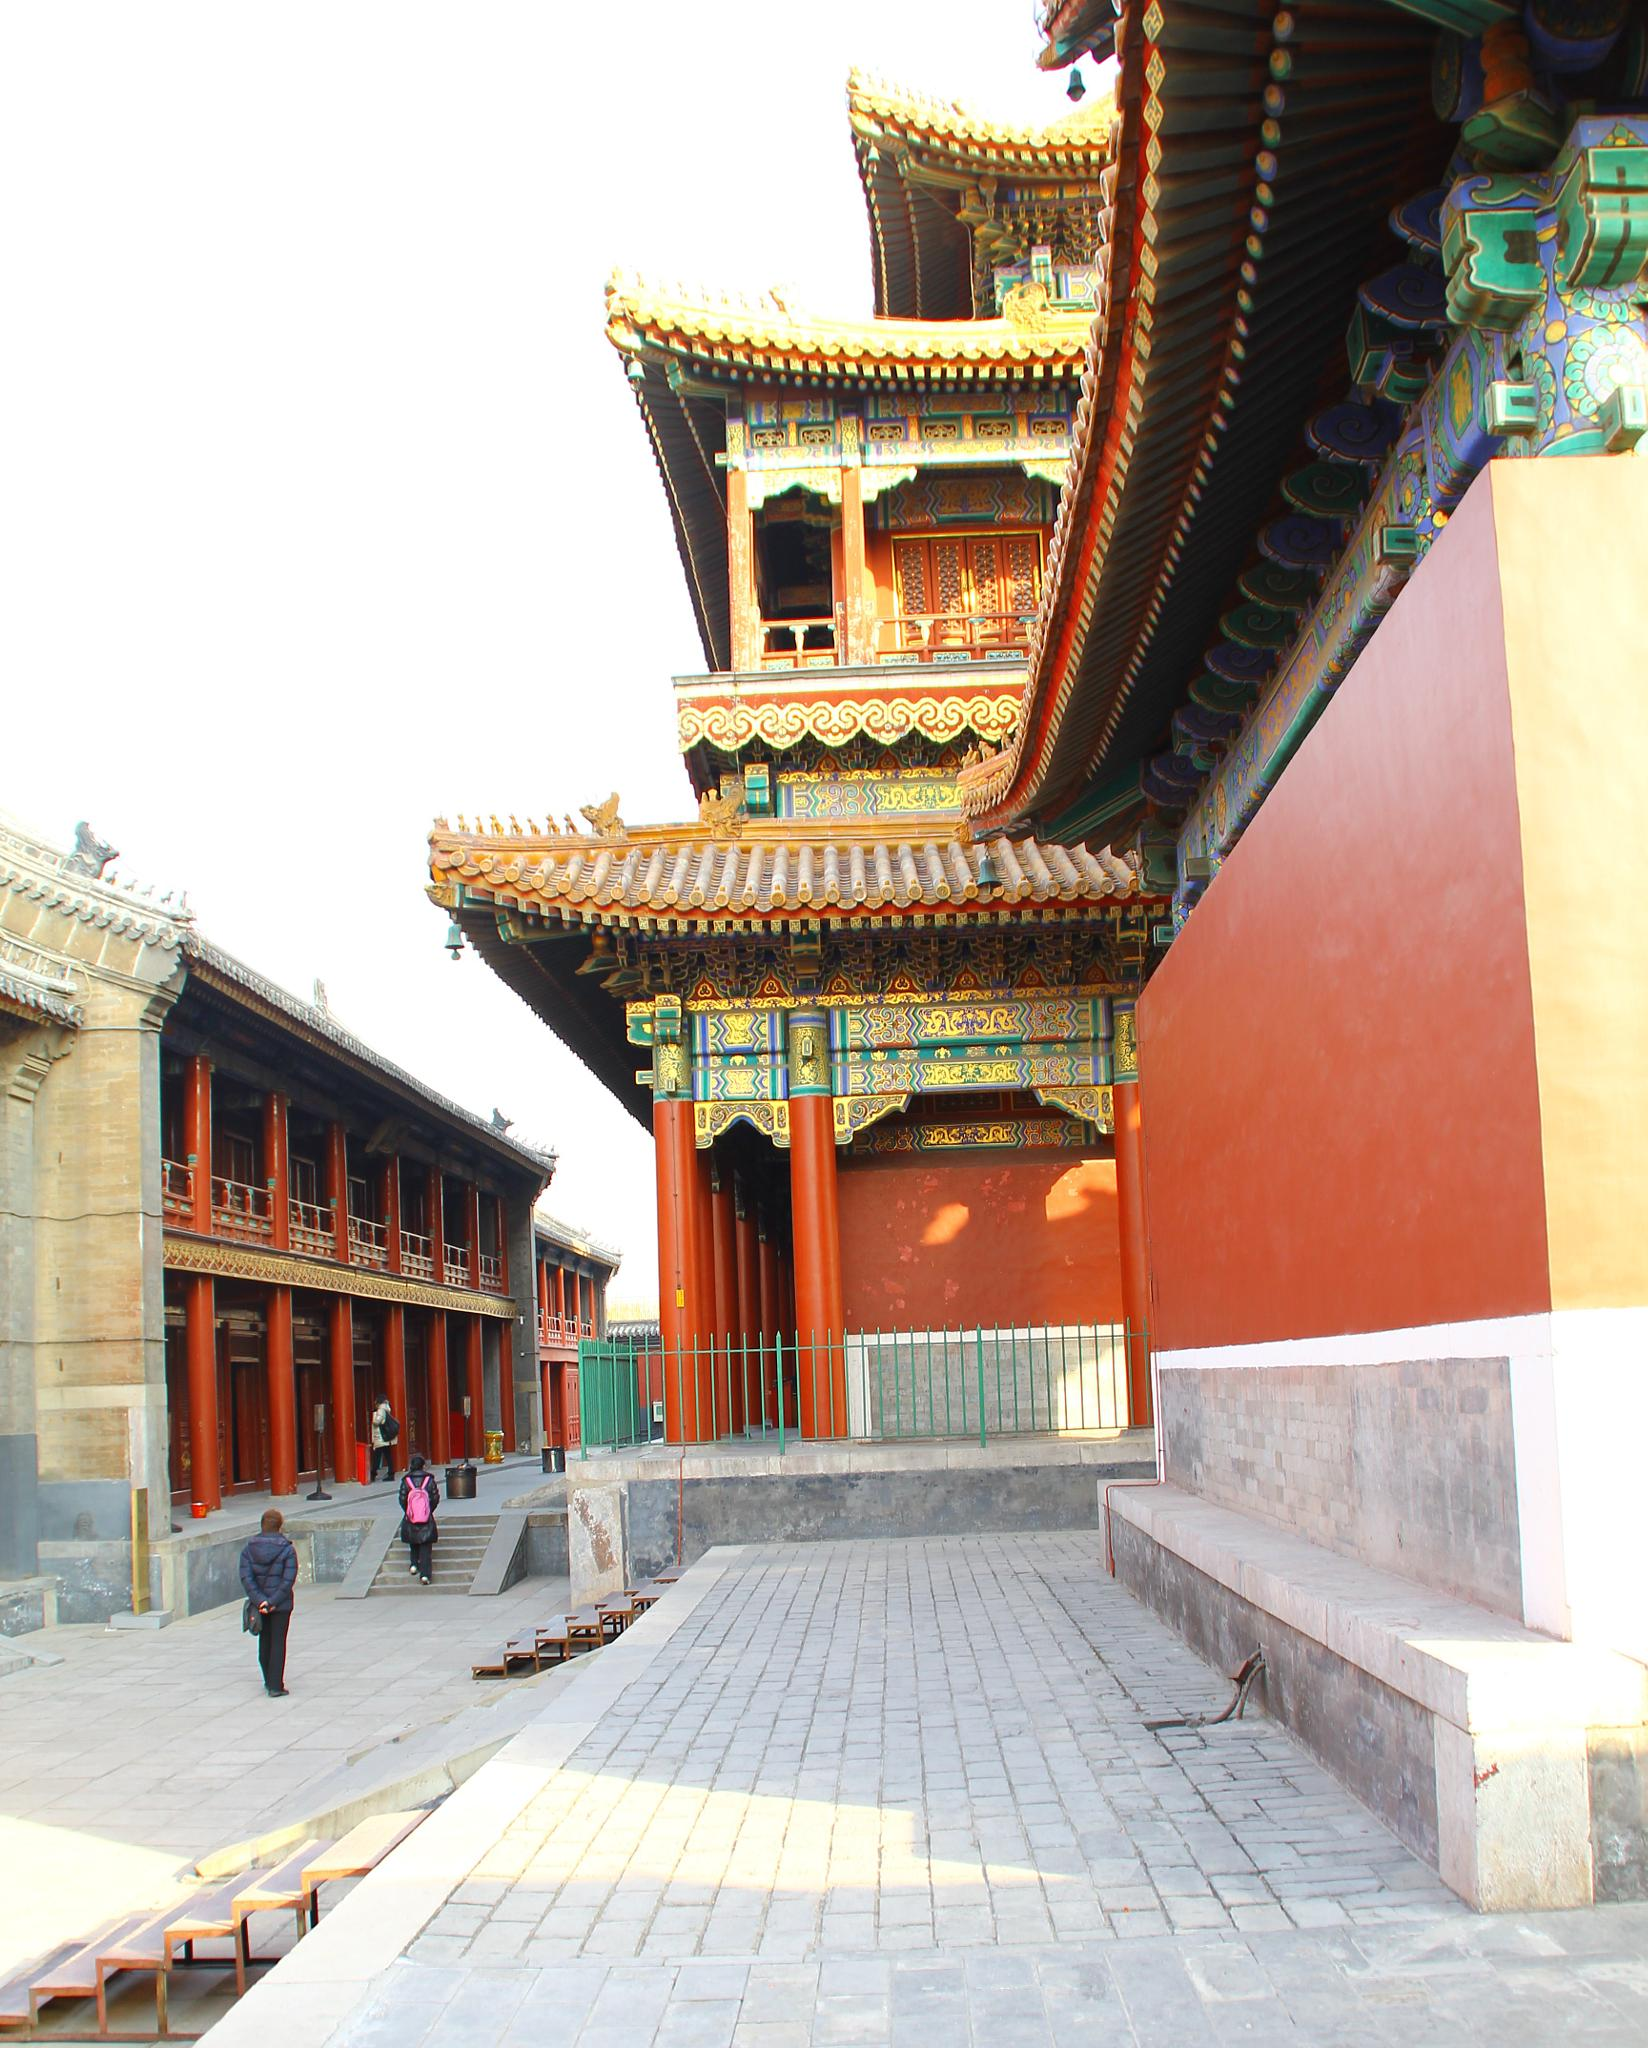 Lama temple in Beijing by Ulf.G.Fagerstrom